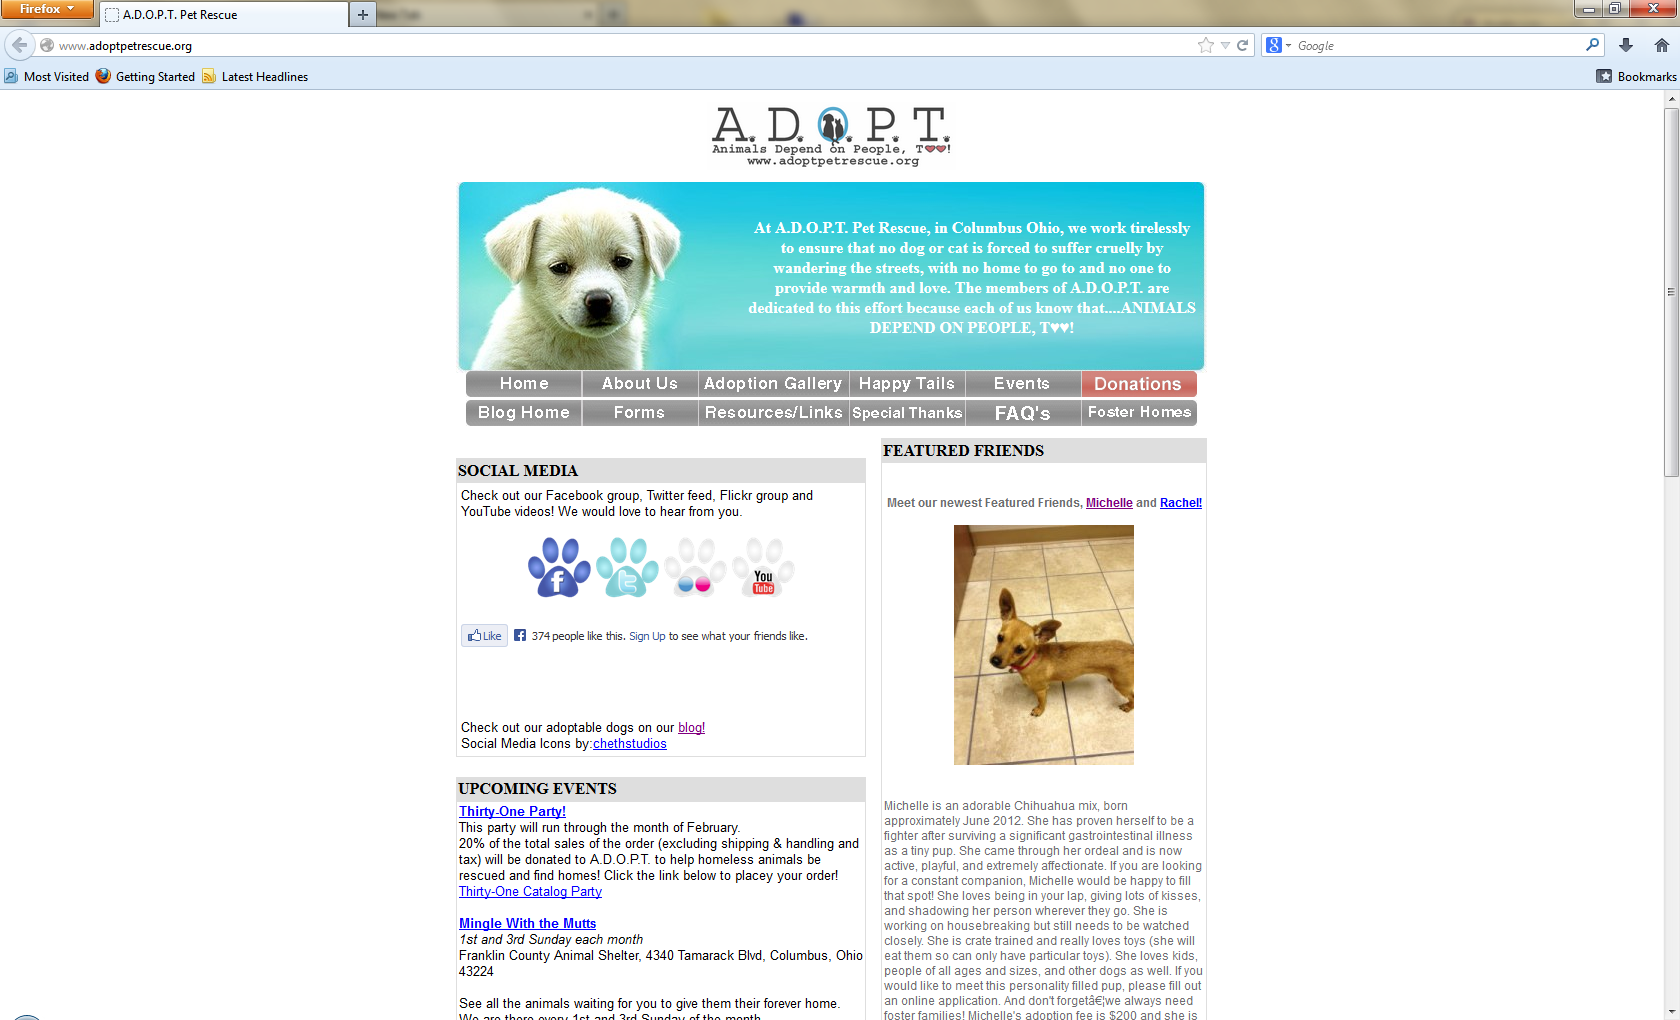 screenshot of the old site design layout